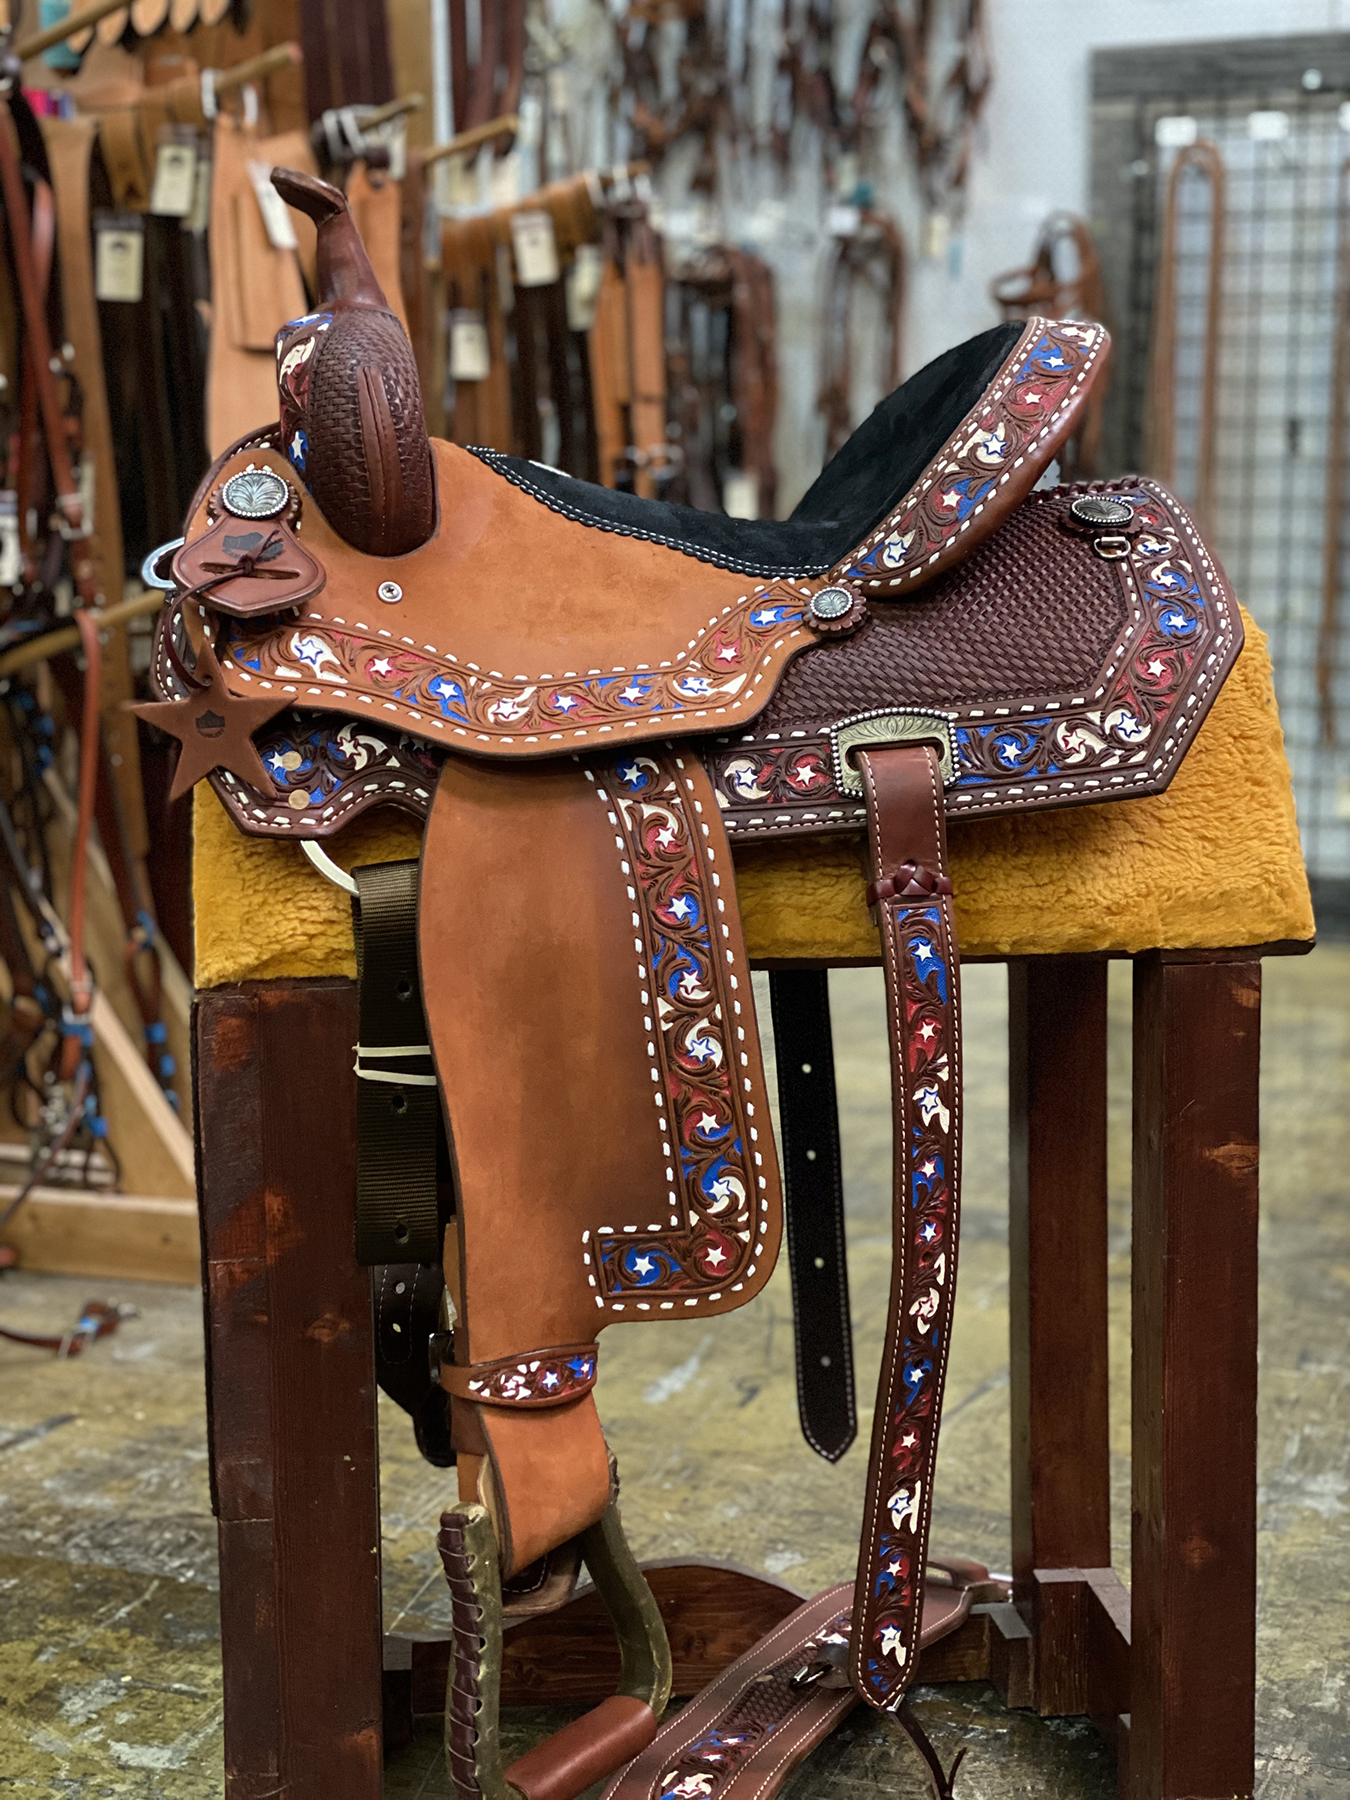 <B>15in</B><p>USA Barrel Saddle</p>